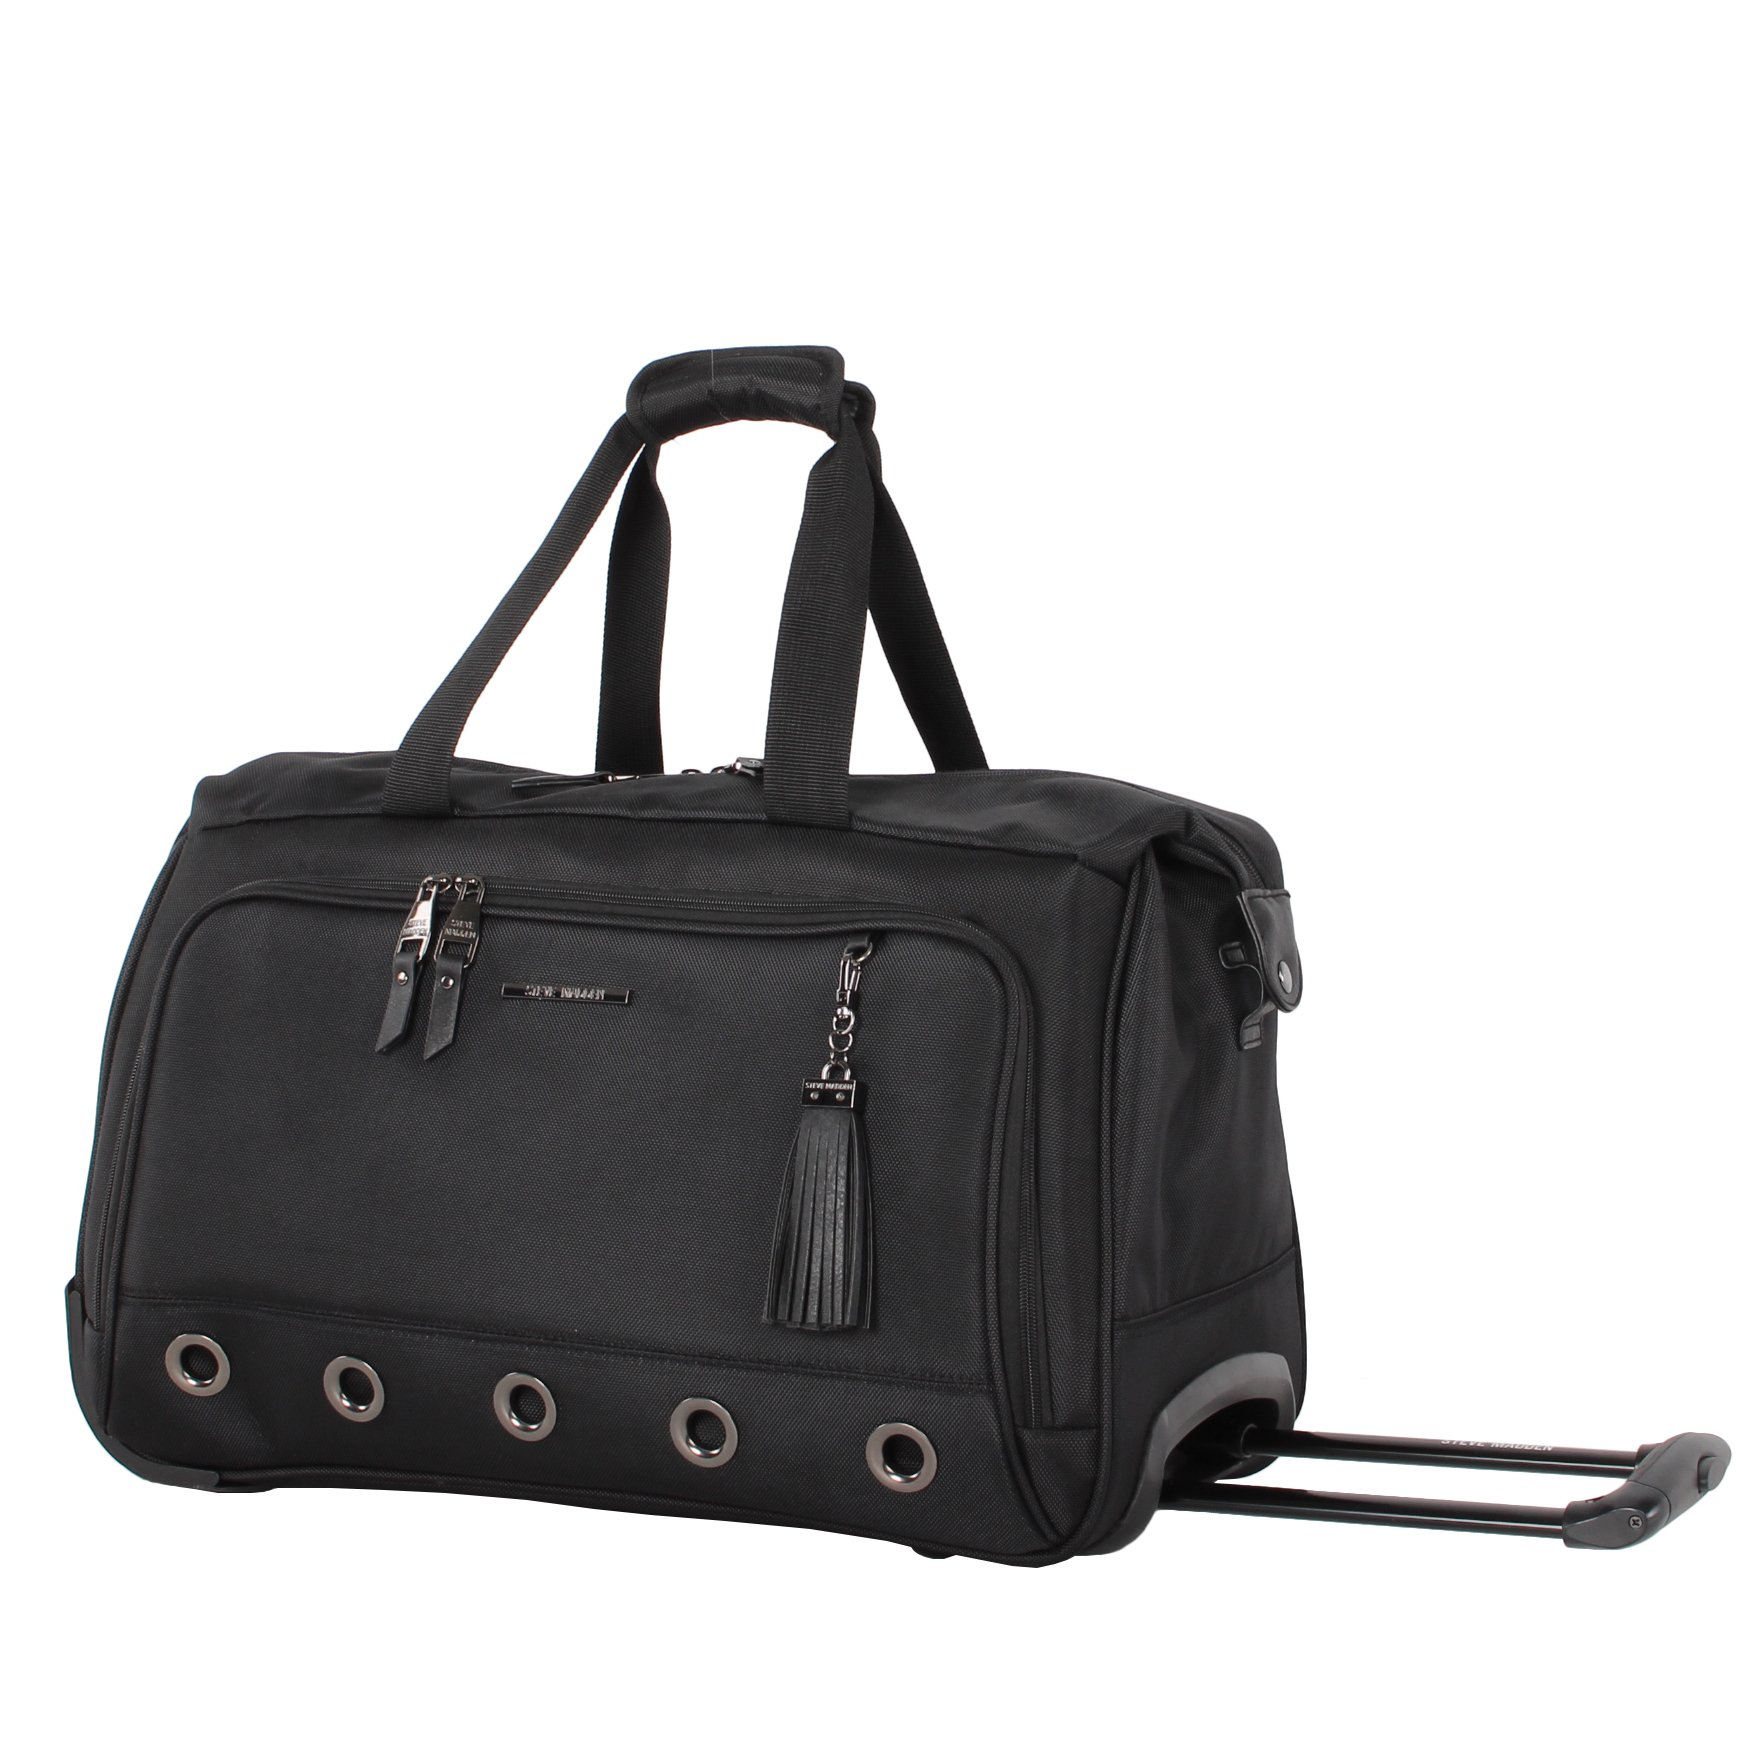 Steve Madden Luggage Suitcase Wheeled Duffle Bag (B-Social Black)